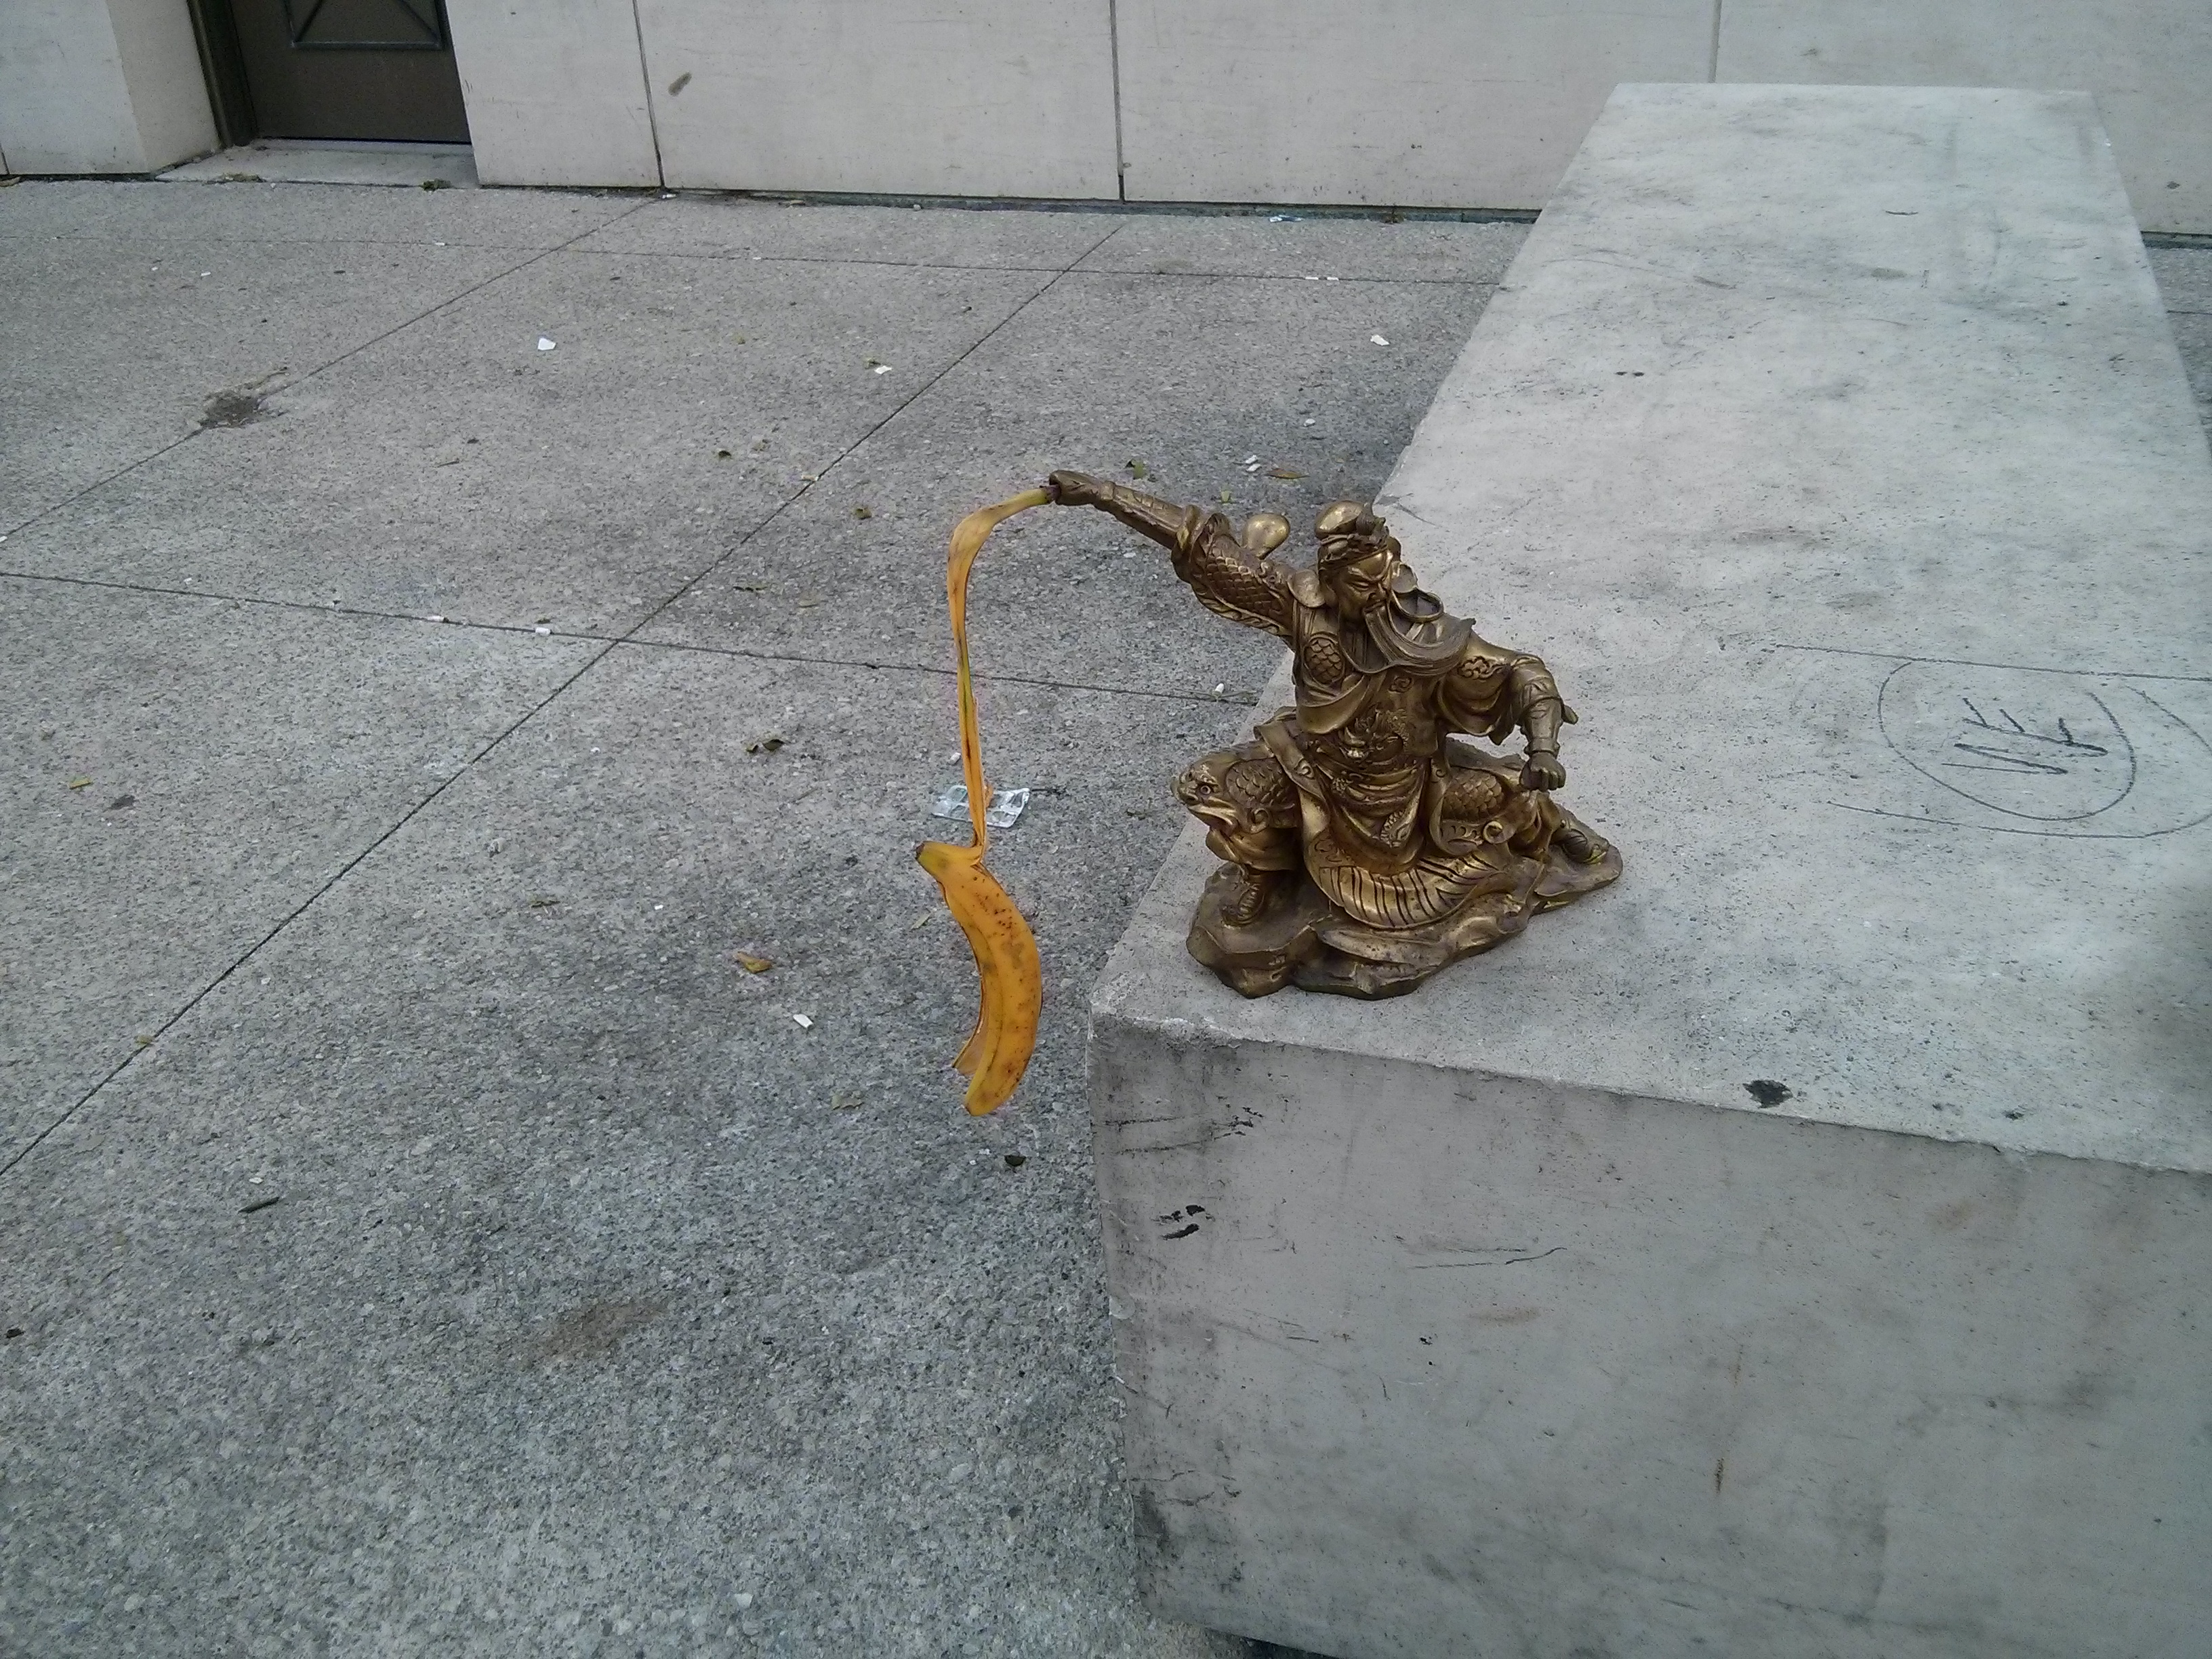 statue with a banana peel stuck into his hand